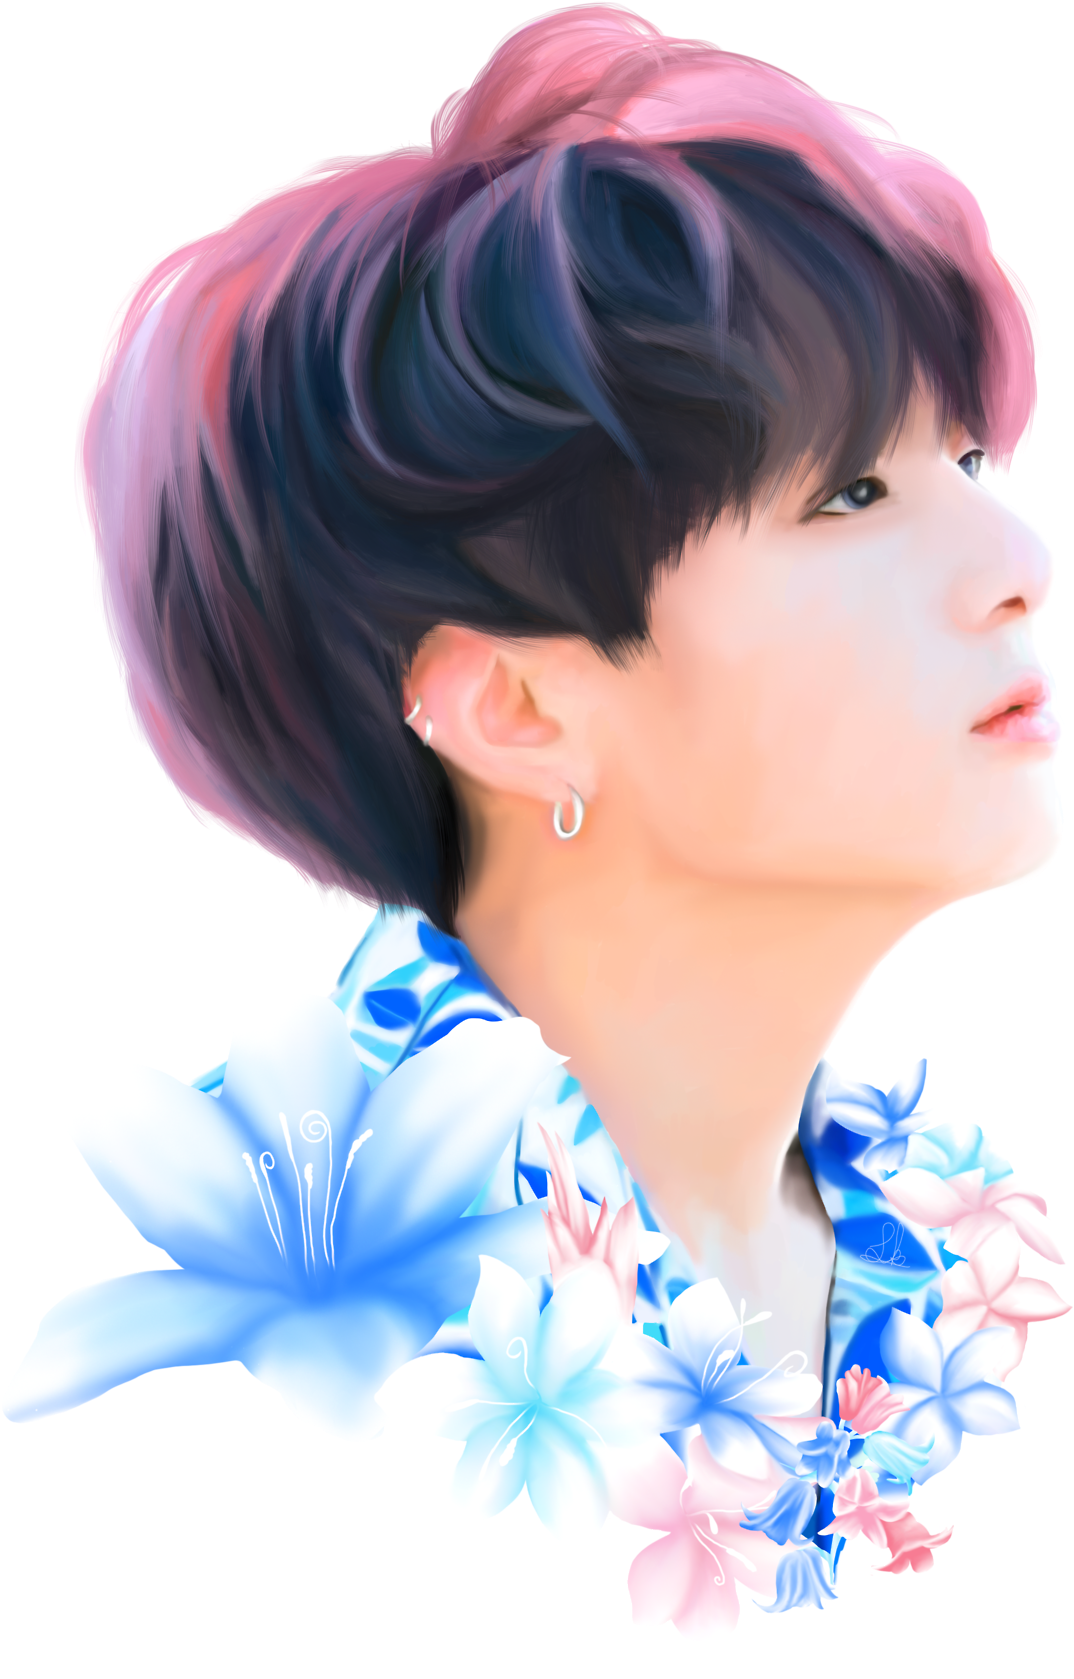 Transparent jungkook blue. Download hd flynns drawings